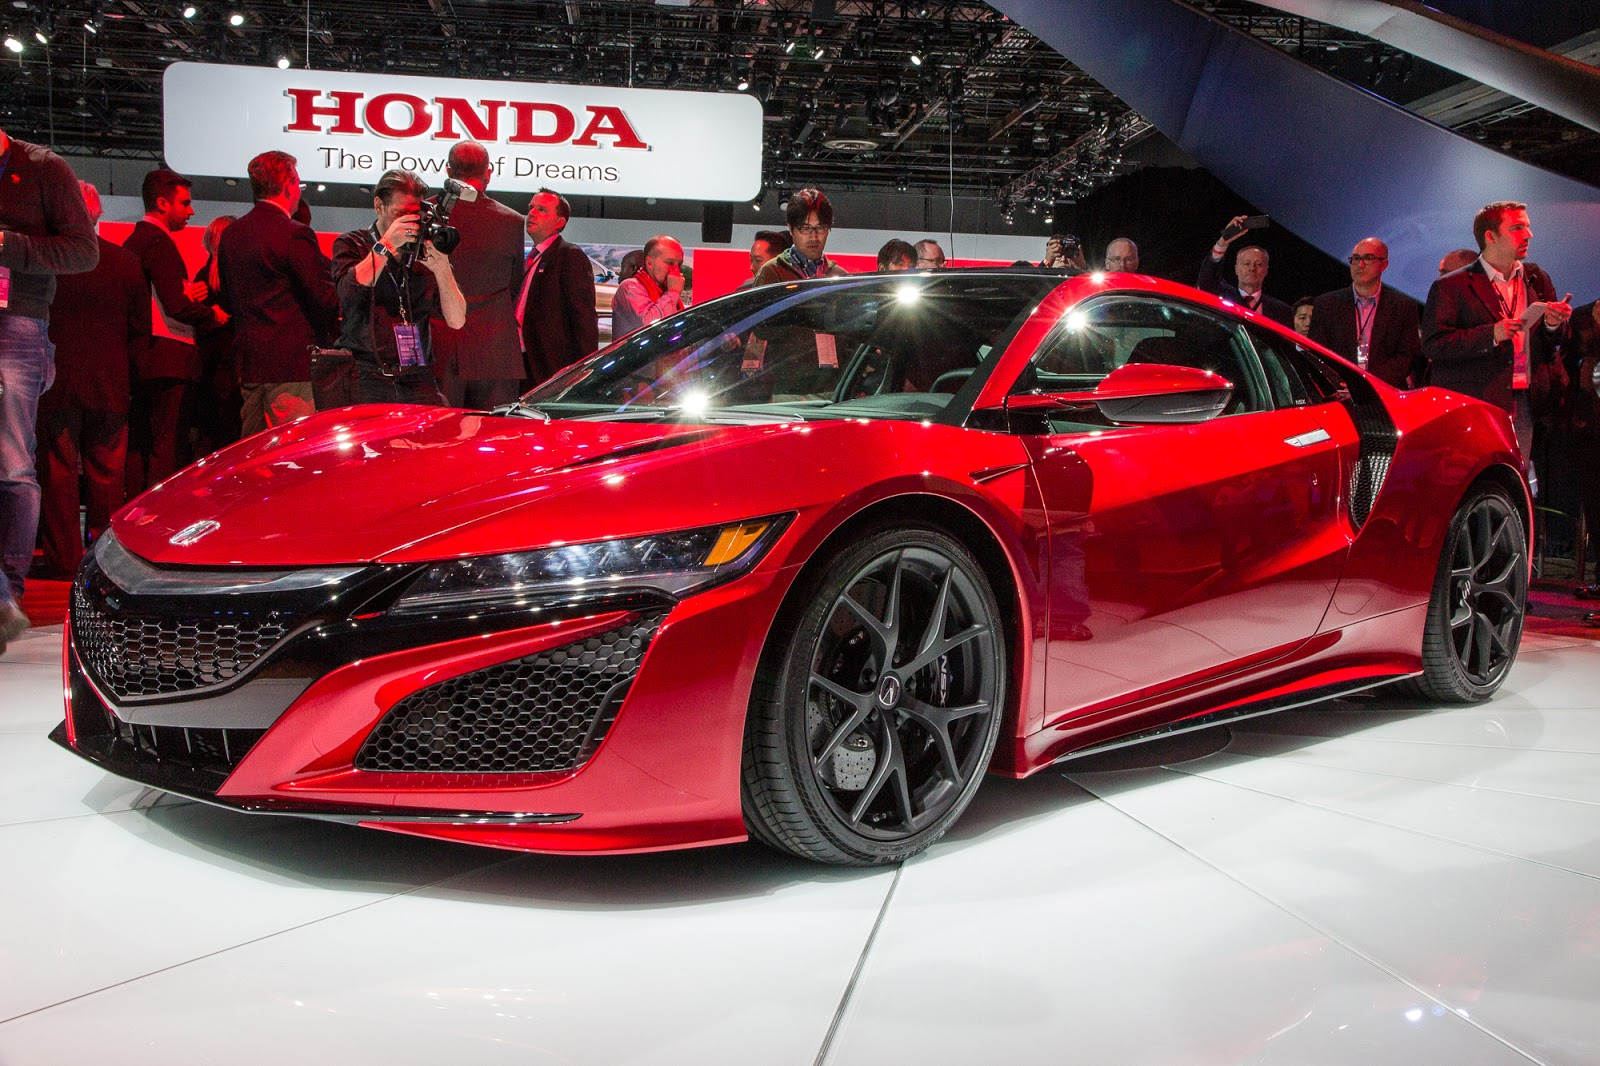 2017 Acura NSX   Future Sports Cars, Best Future Cars, New Cars For 2017